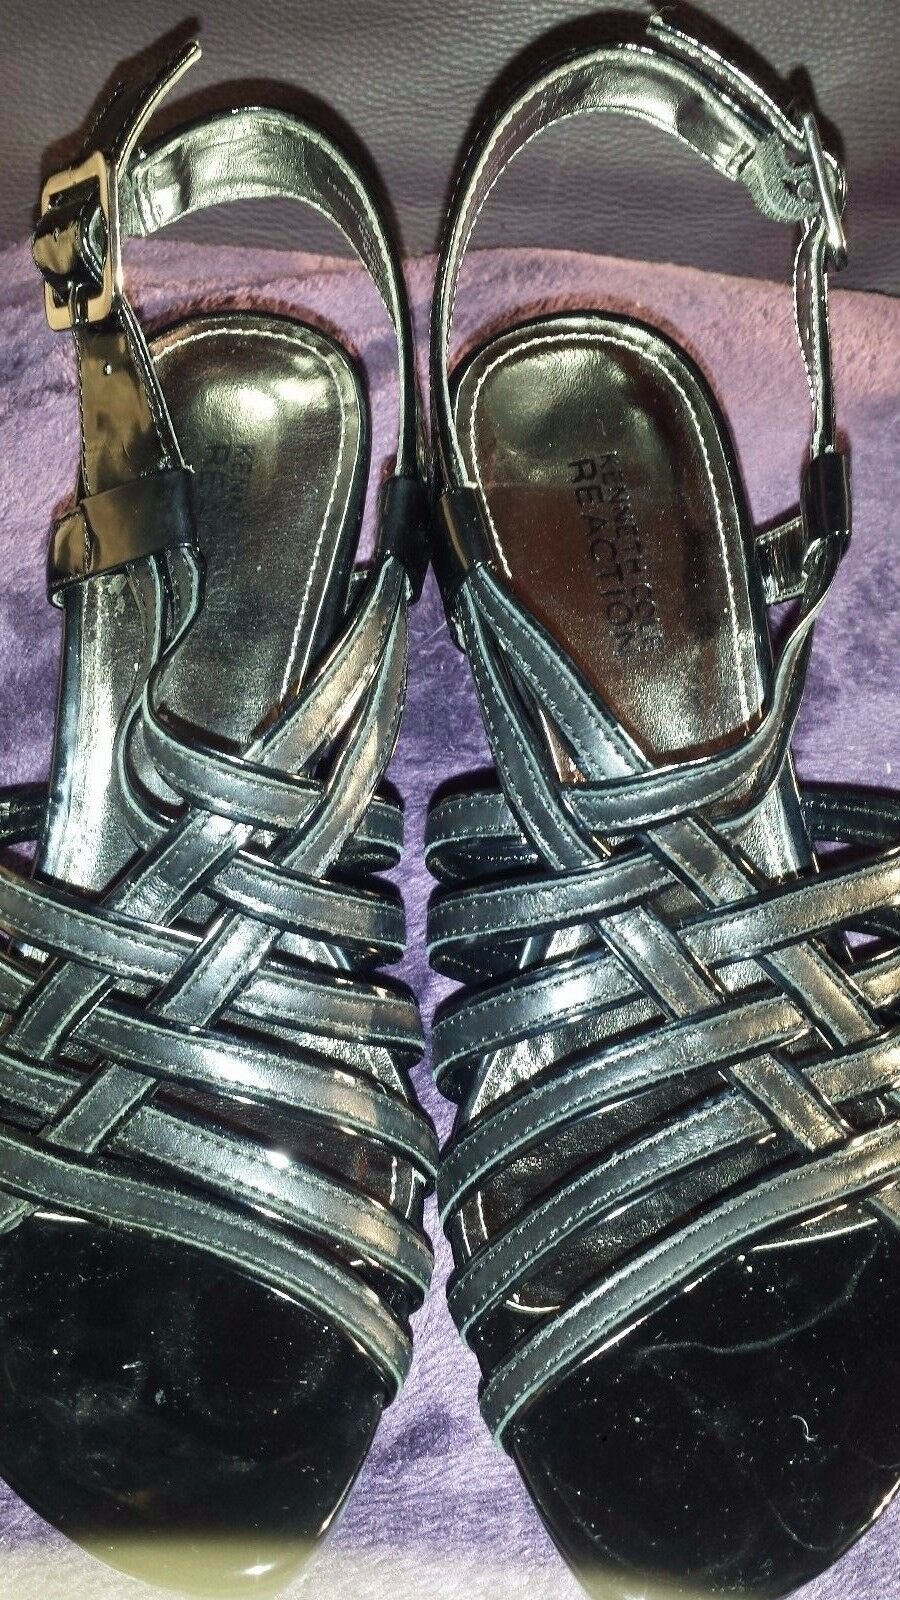 Kenneth Kenneth Kenneth Cole Reaction Dare To Wear Black High Wedge Heel Sandals Size 7 4ce882